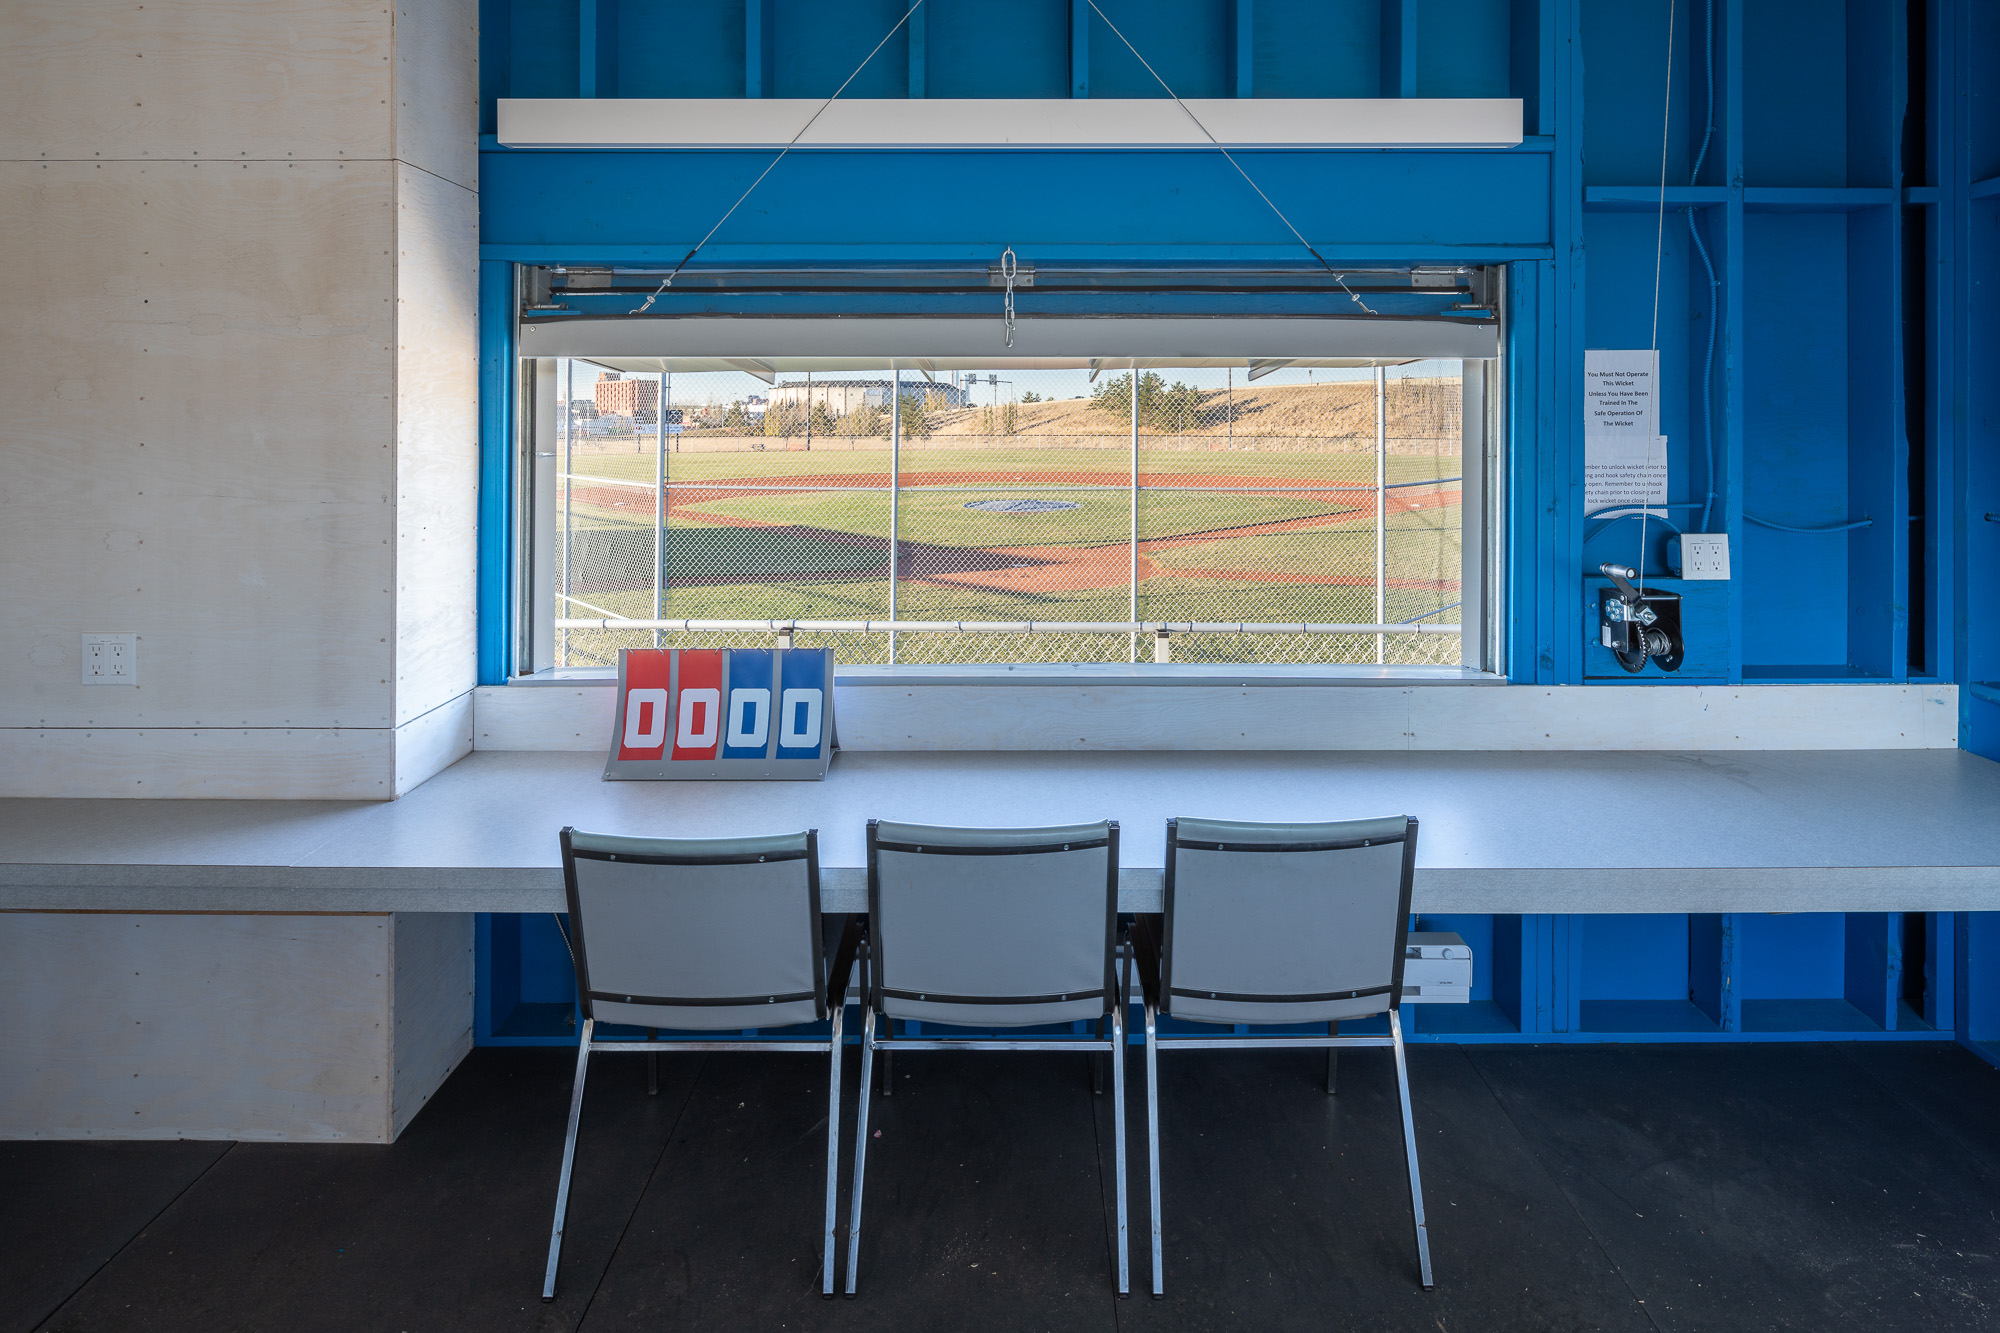 Wally Footz Field Scorekeeper Building